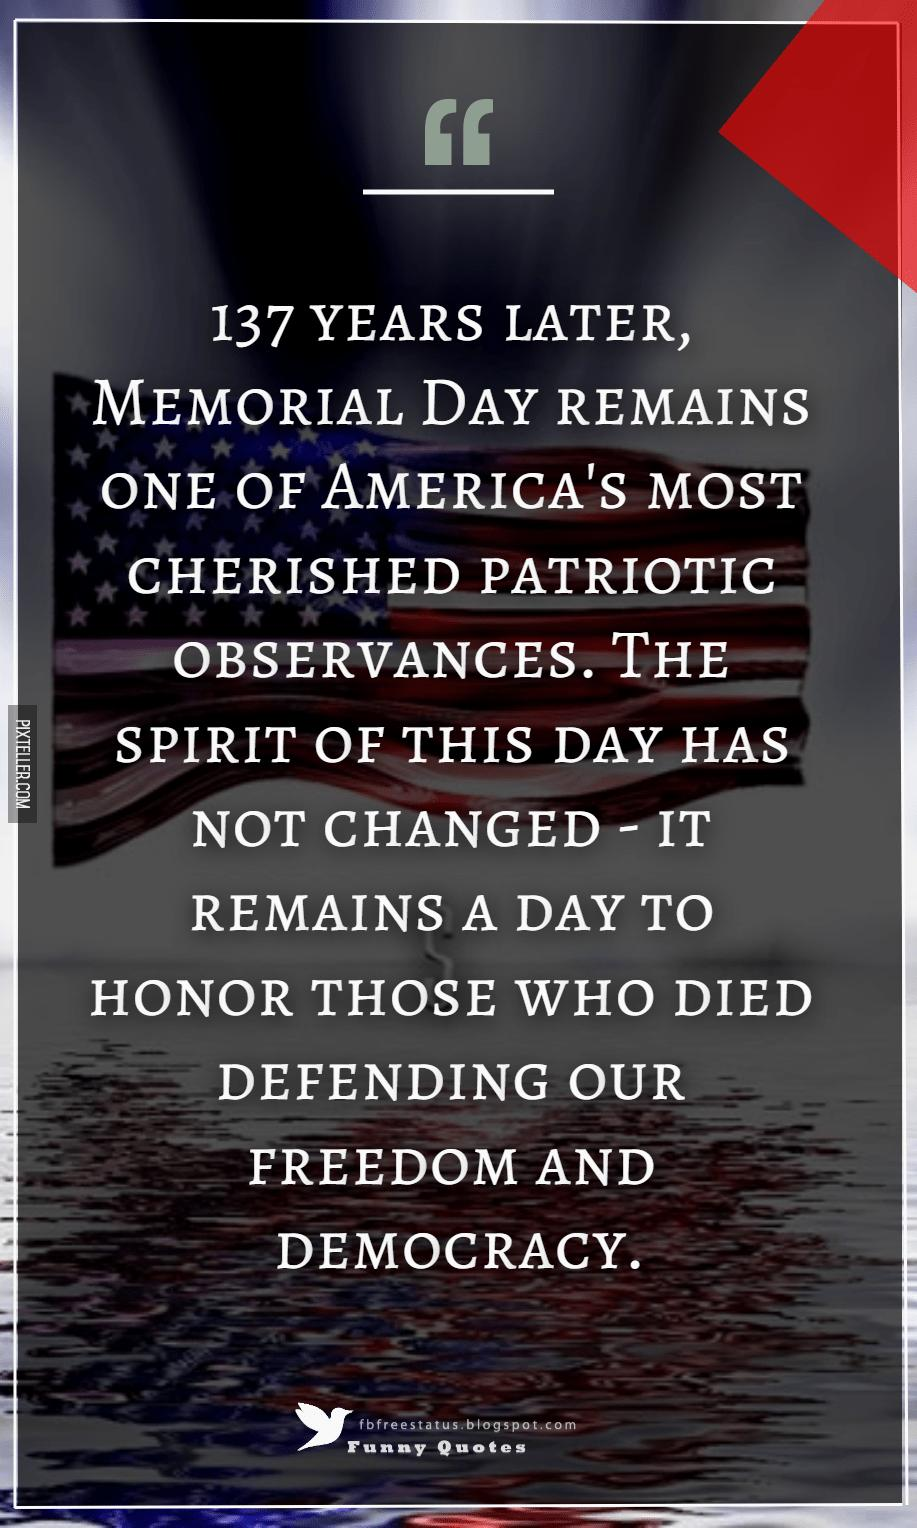 137 years later, Memorial Day remains one of America's most cherished patriotic observances. The spirit of this day has not changed - it remains a day to honor those who died defending our freedom and democracy. ? Doc Hastings